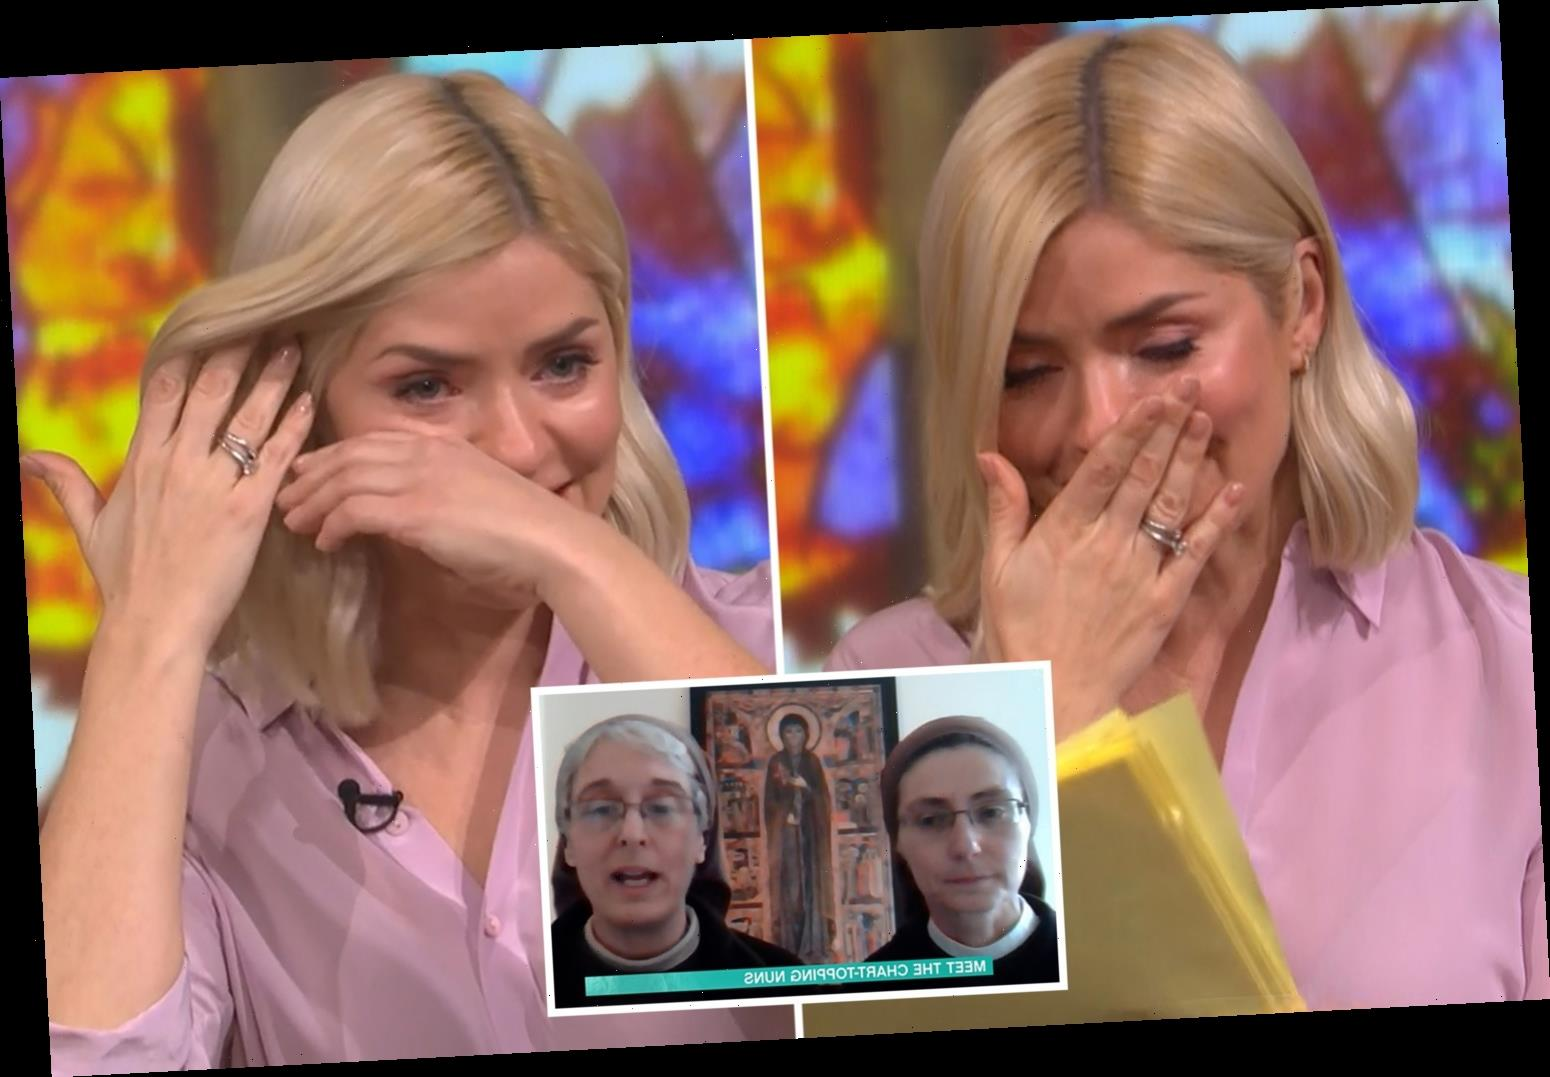 Holly Willoughby breaks down in tears on This Morning after moving interview with nuns who said 'it will all be ok'